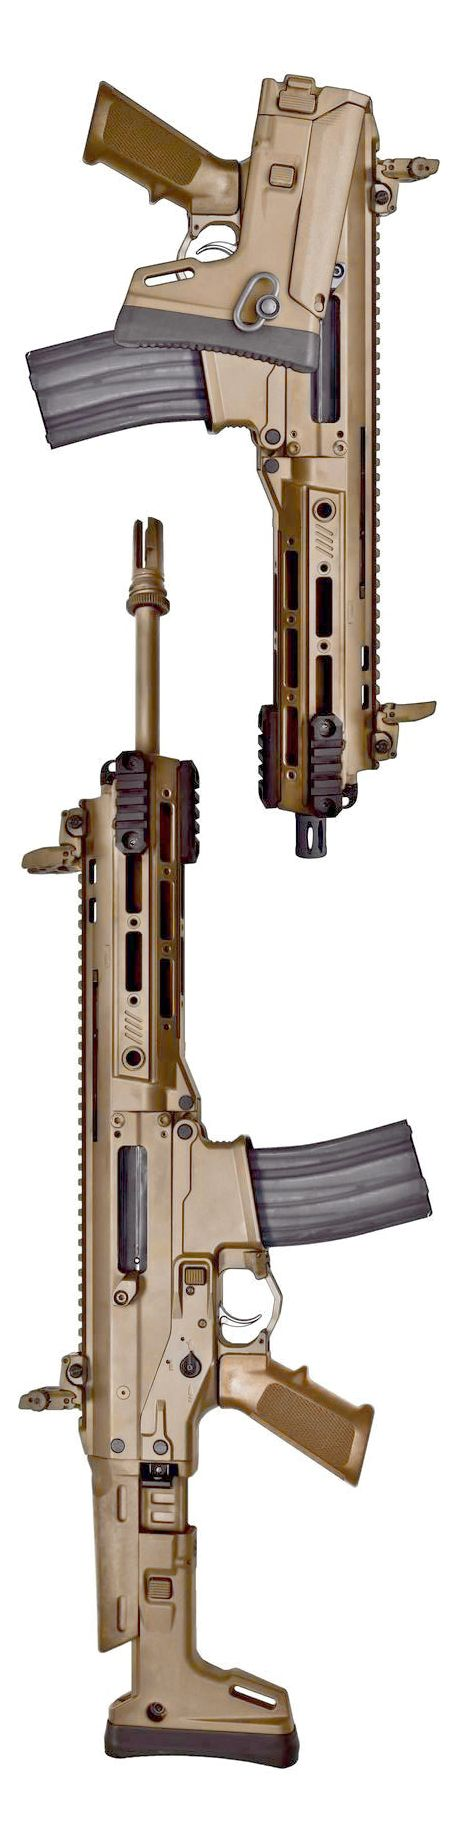 Remington ACR-IC 'Individual Carbine' in compact and standard.